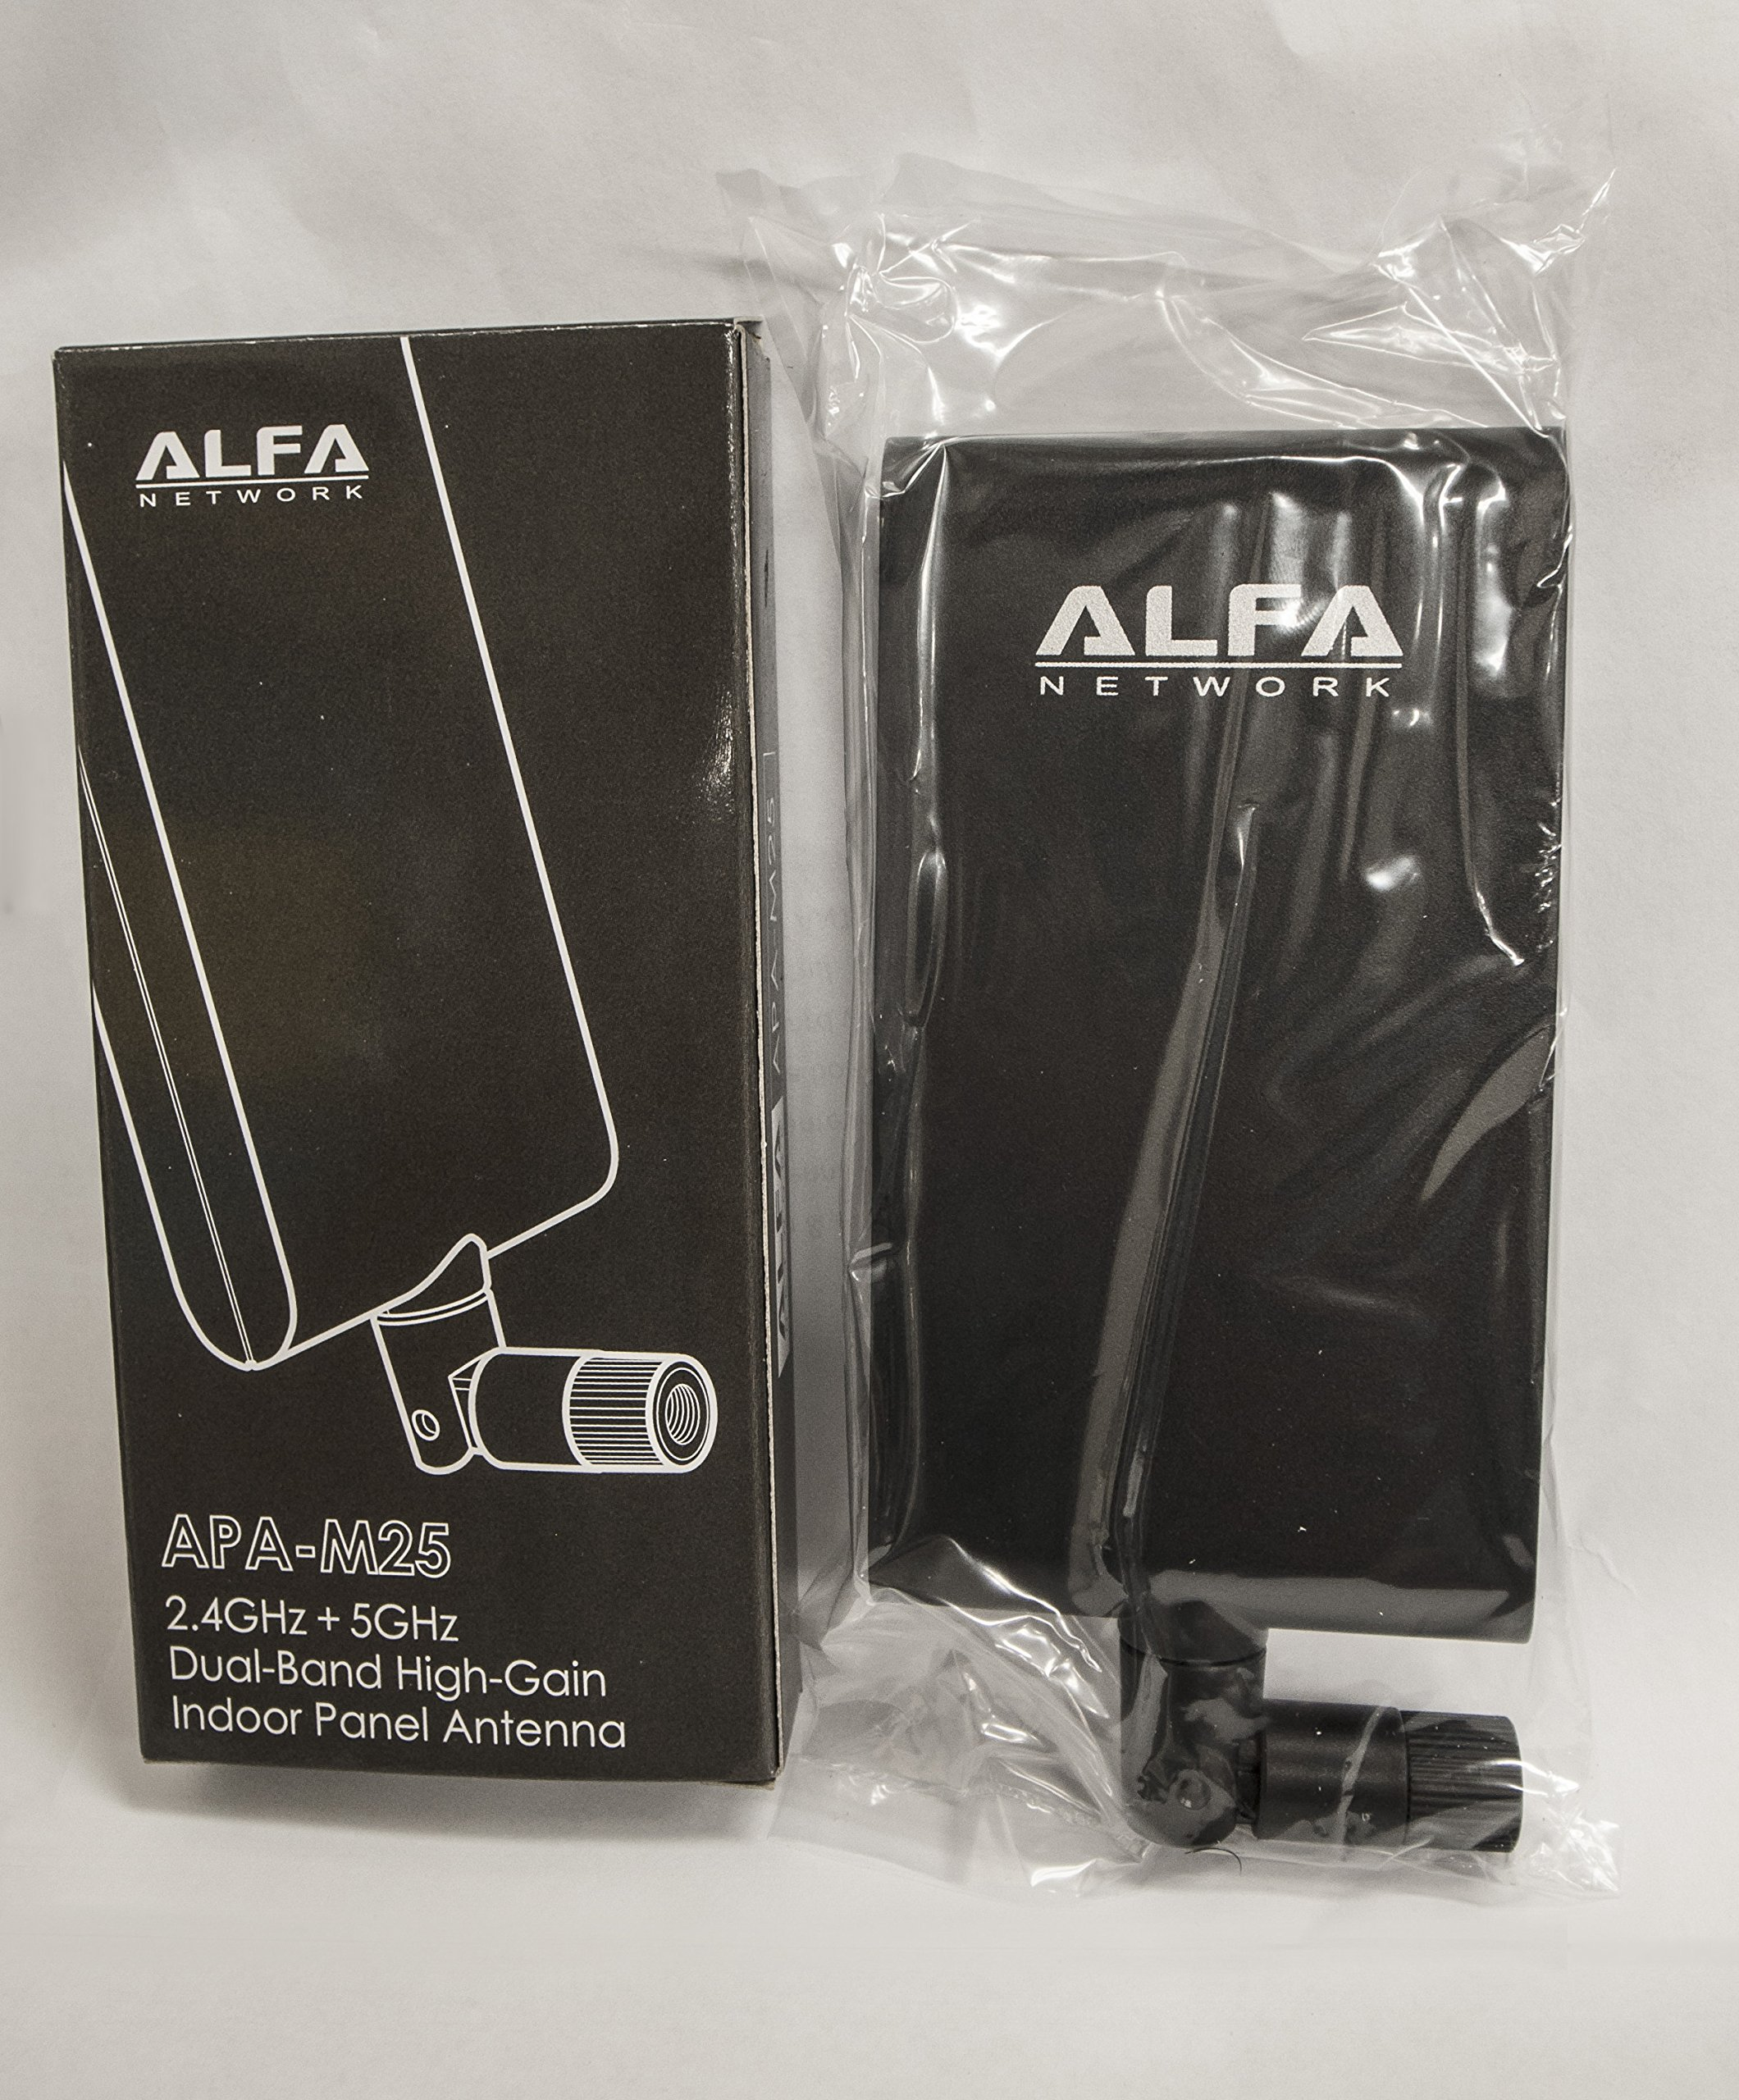 Alfa APA-M25 dual band 2.4GHz/5GHz 10dBi high gain directional indoor panel antenna with RP-SMA connector (compare to Asus WL-ANT-157) by ALFA (Image #8)